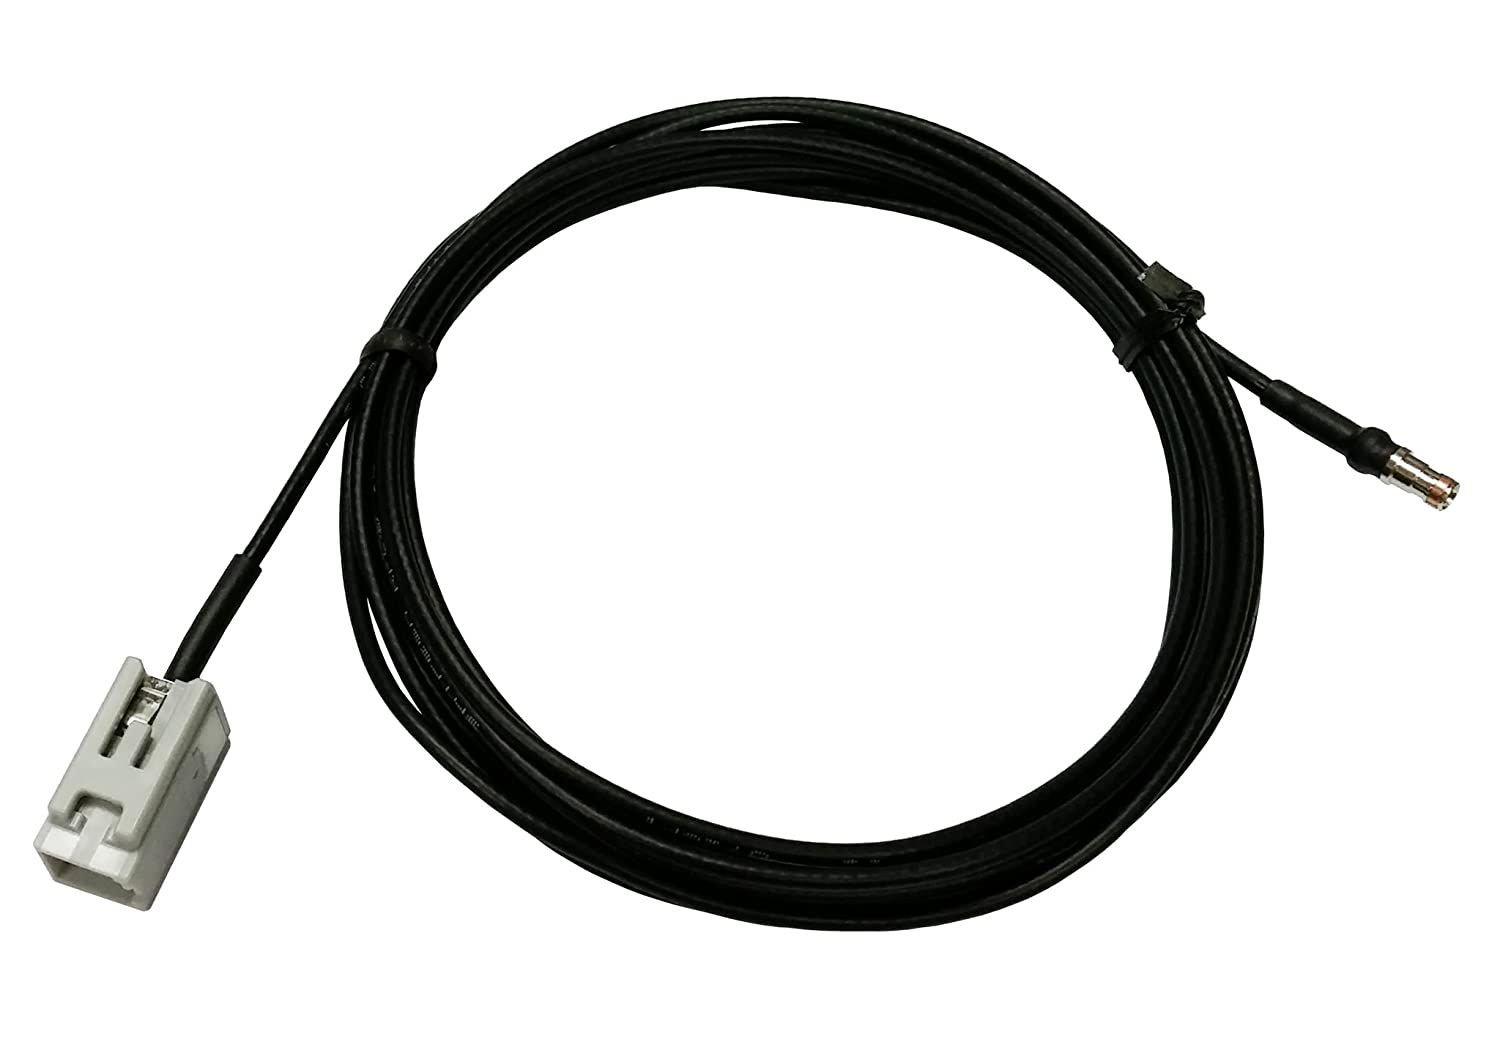 Shark Fin Antenna Adapter for Many Toyota and Lexus Vehicles: SFA12F (Female Connection)